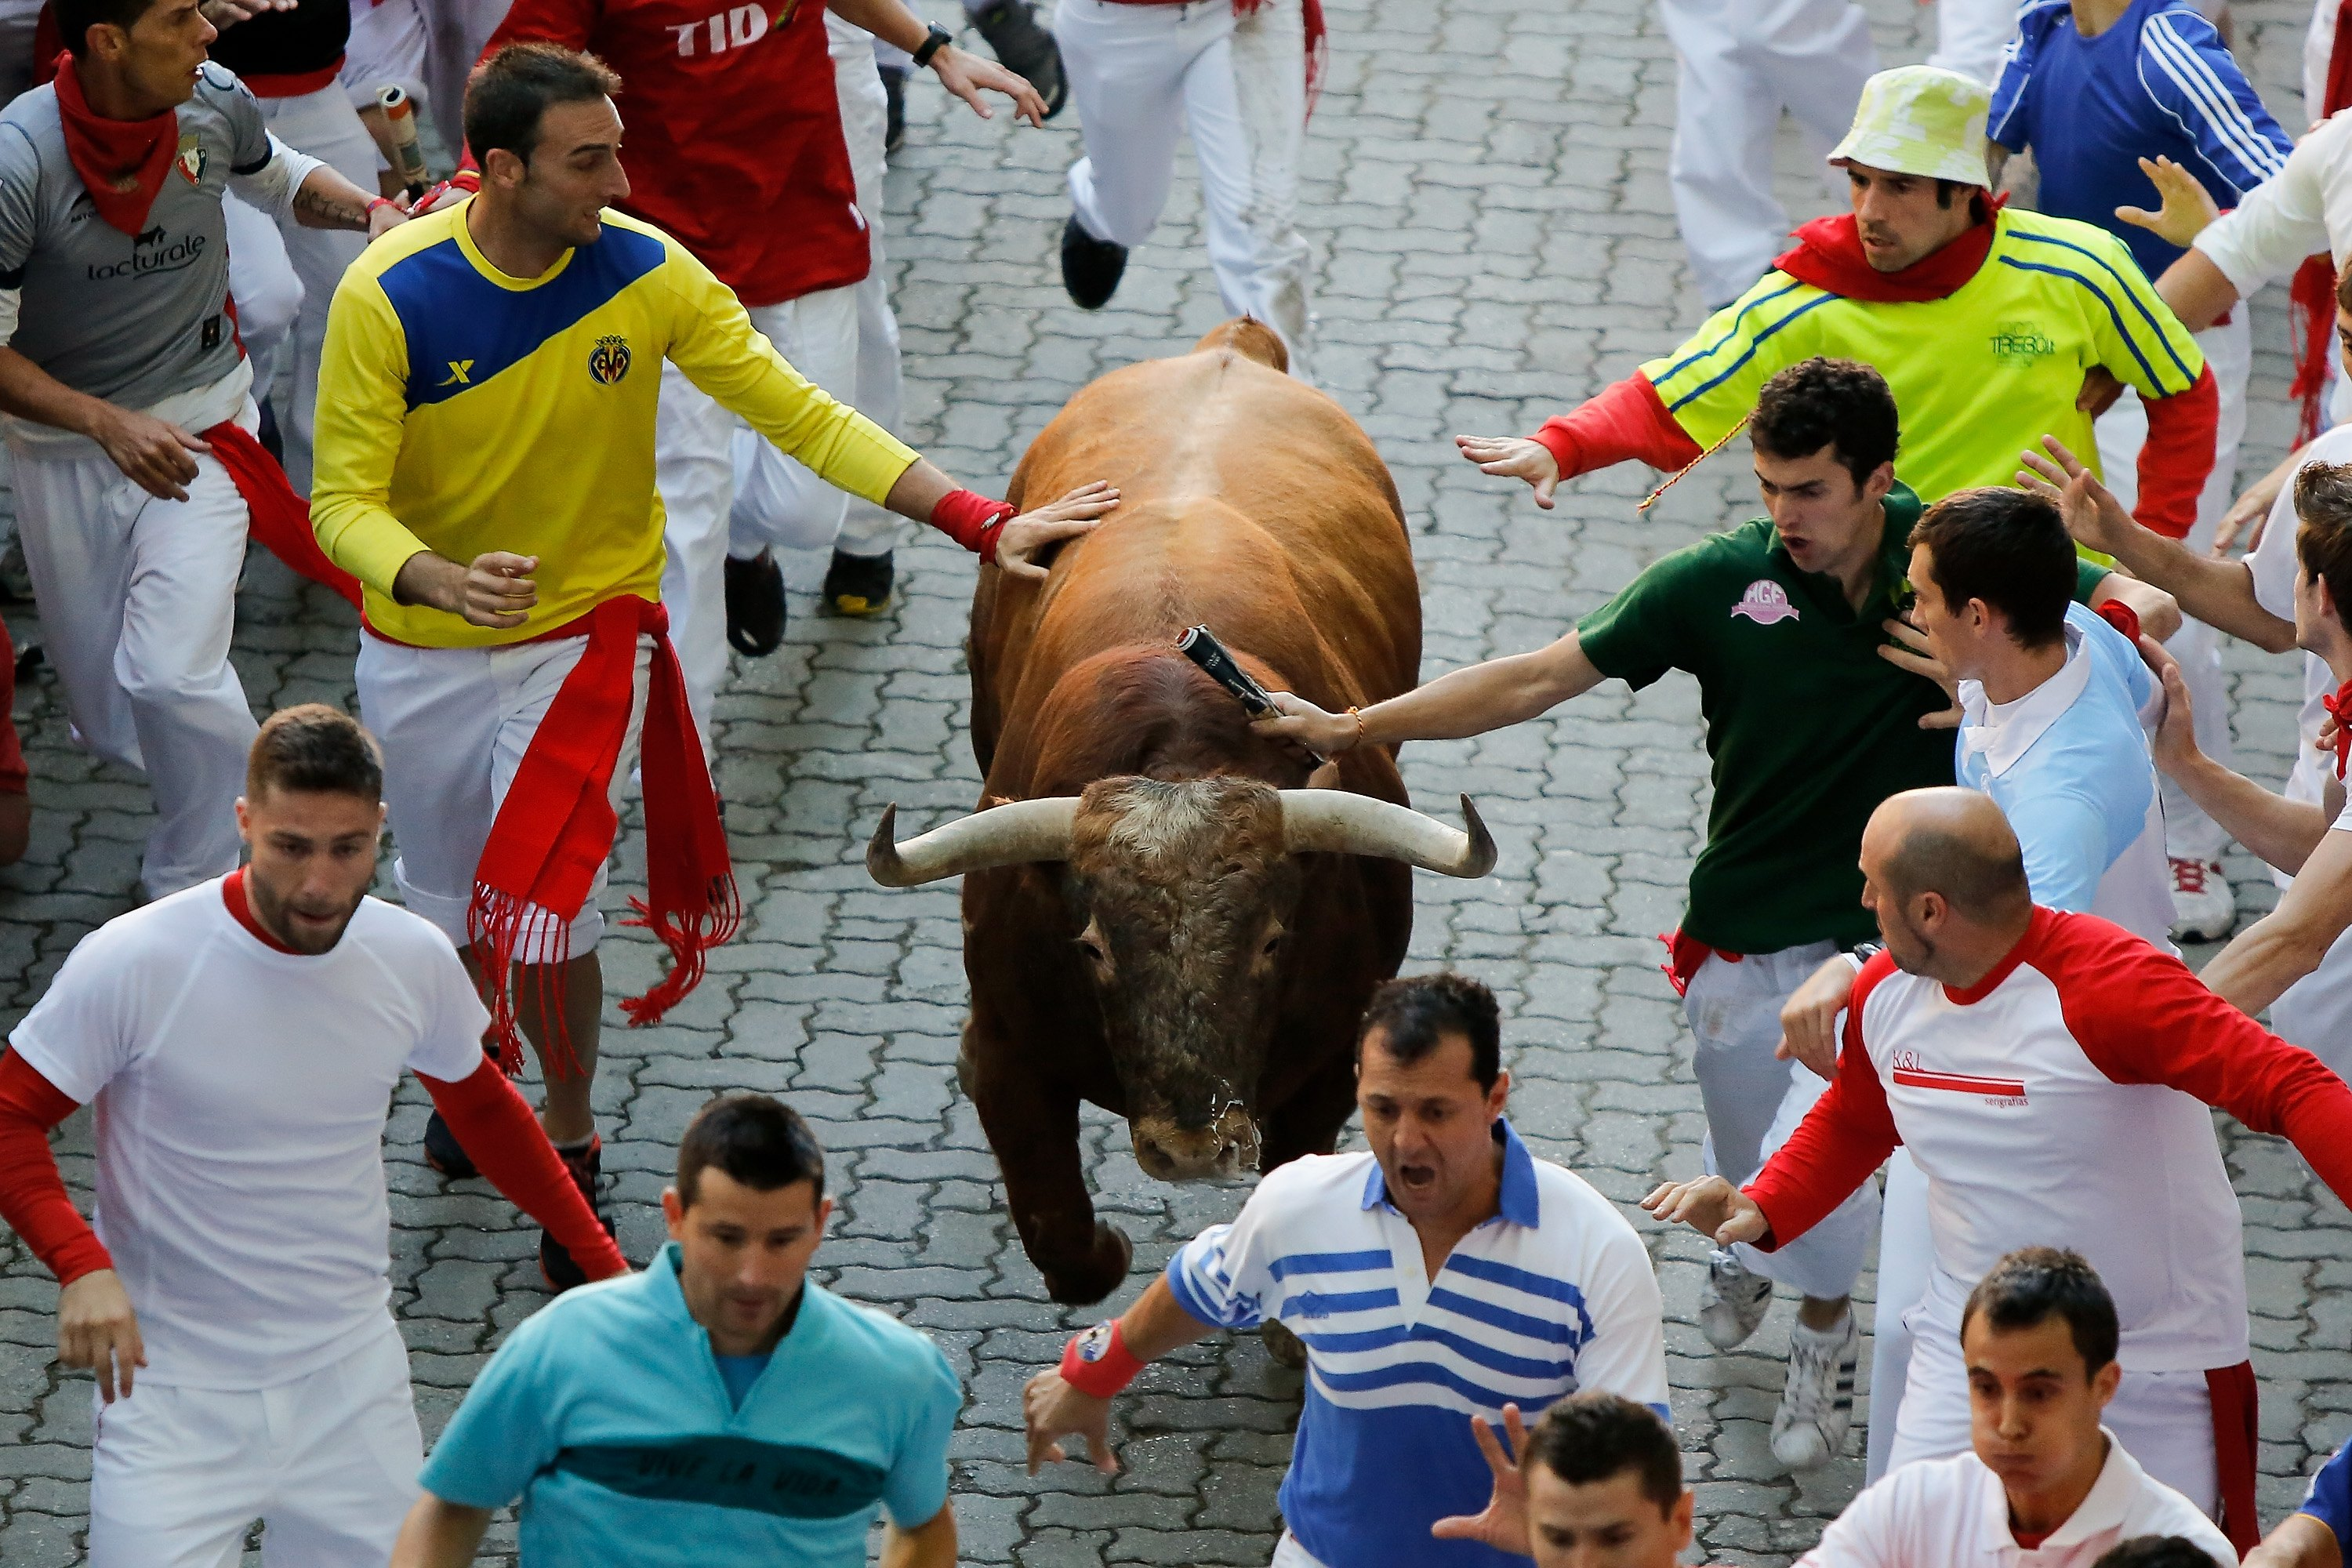 Fiesta De San Fermin Running Of The Bulls - Day 2